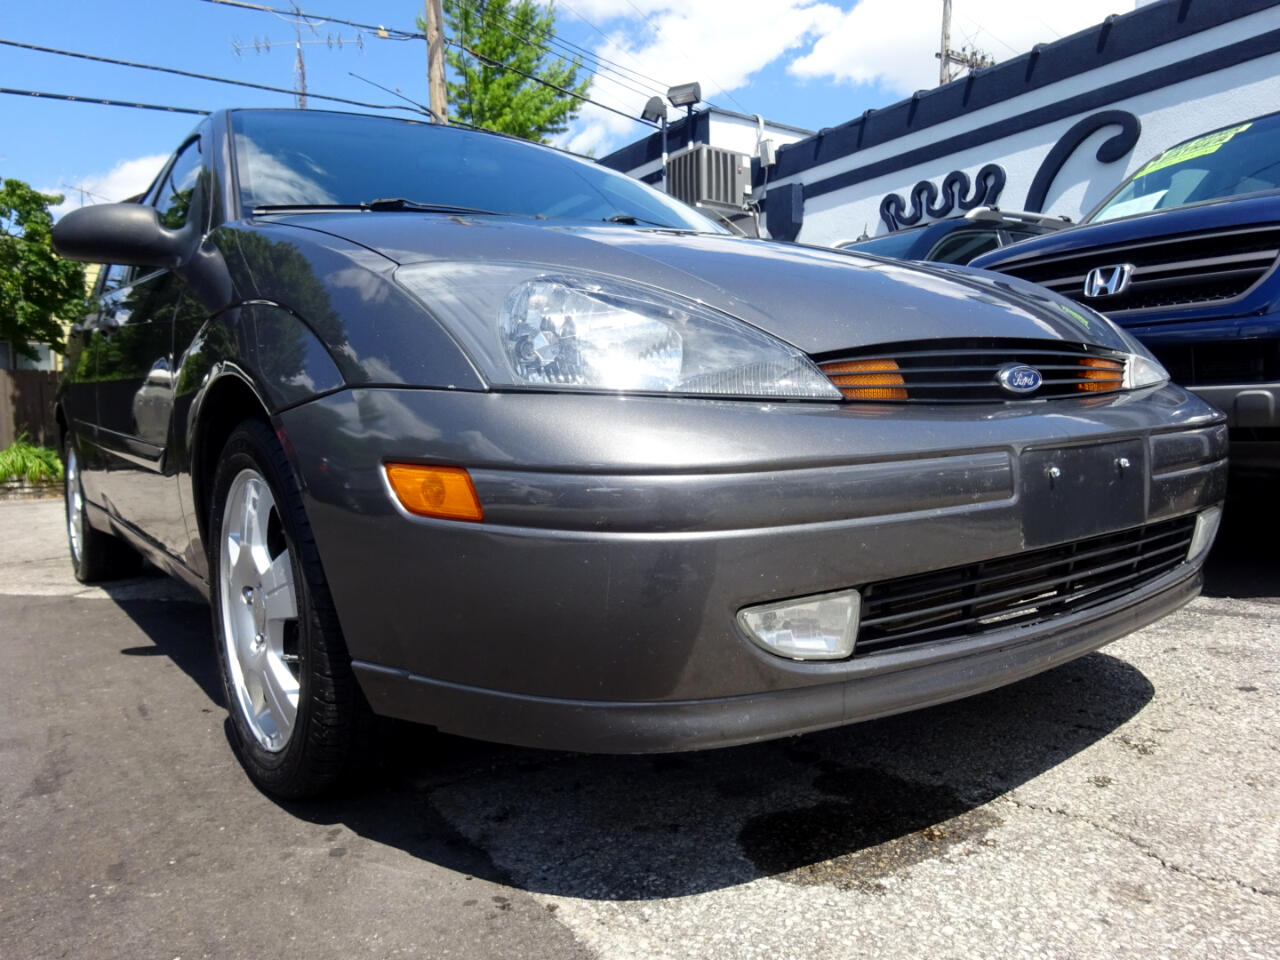 Ford Focus 5dr Sdn HB ZX5 Base 2004